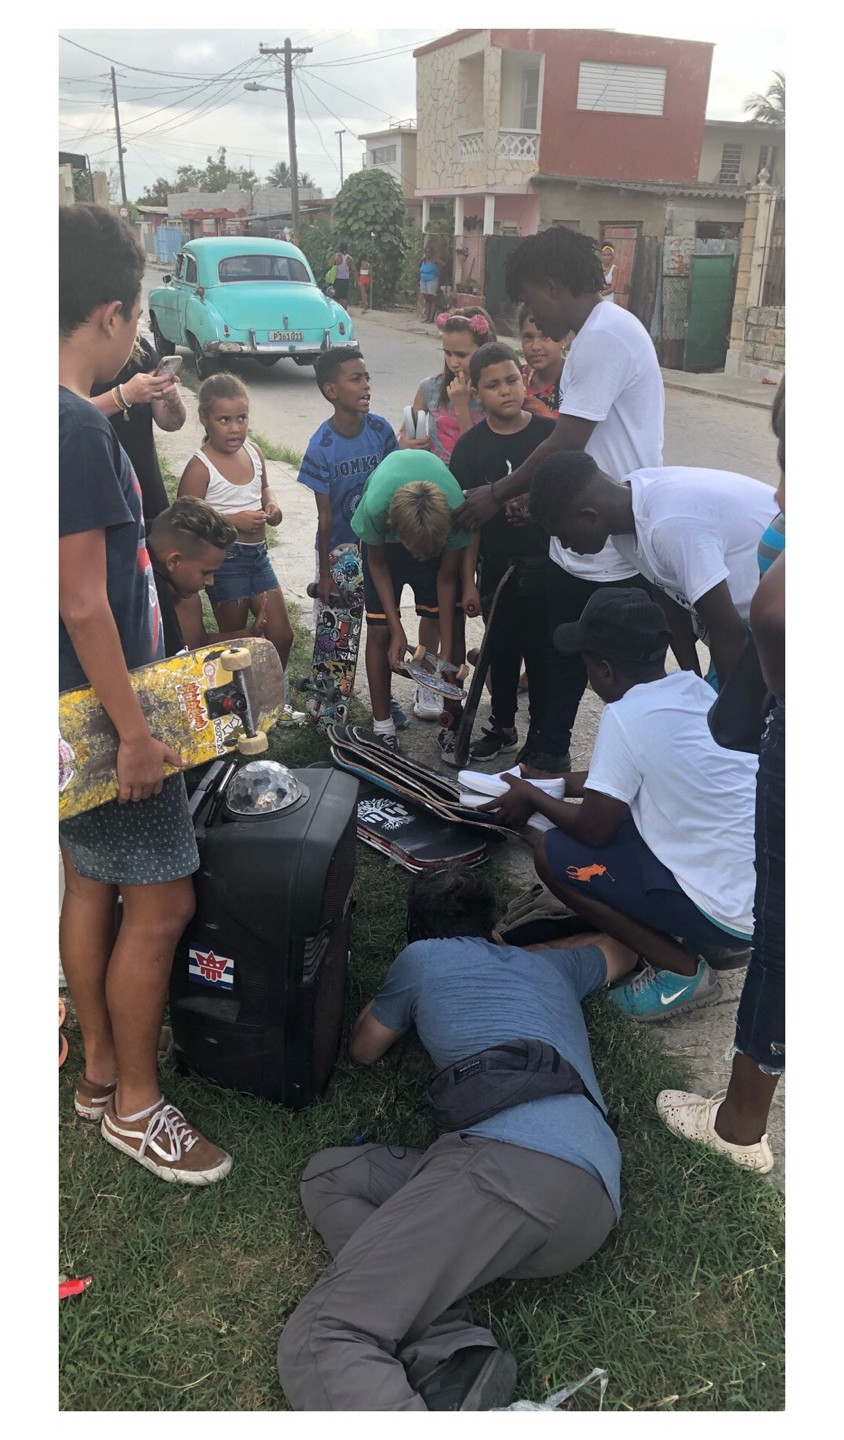 Giving skateboards to Cuban youth